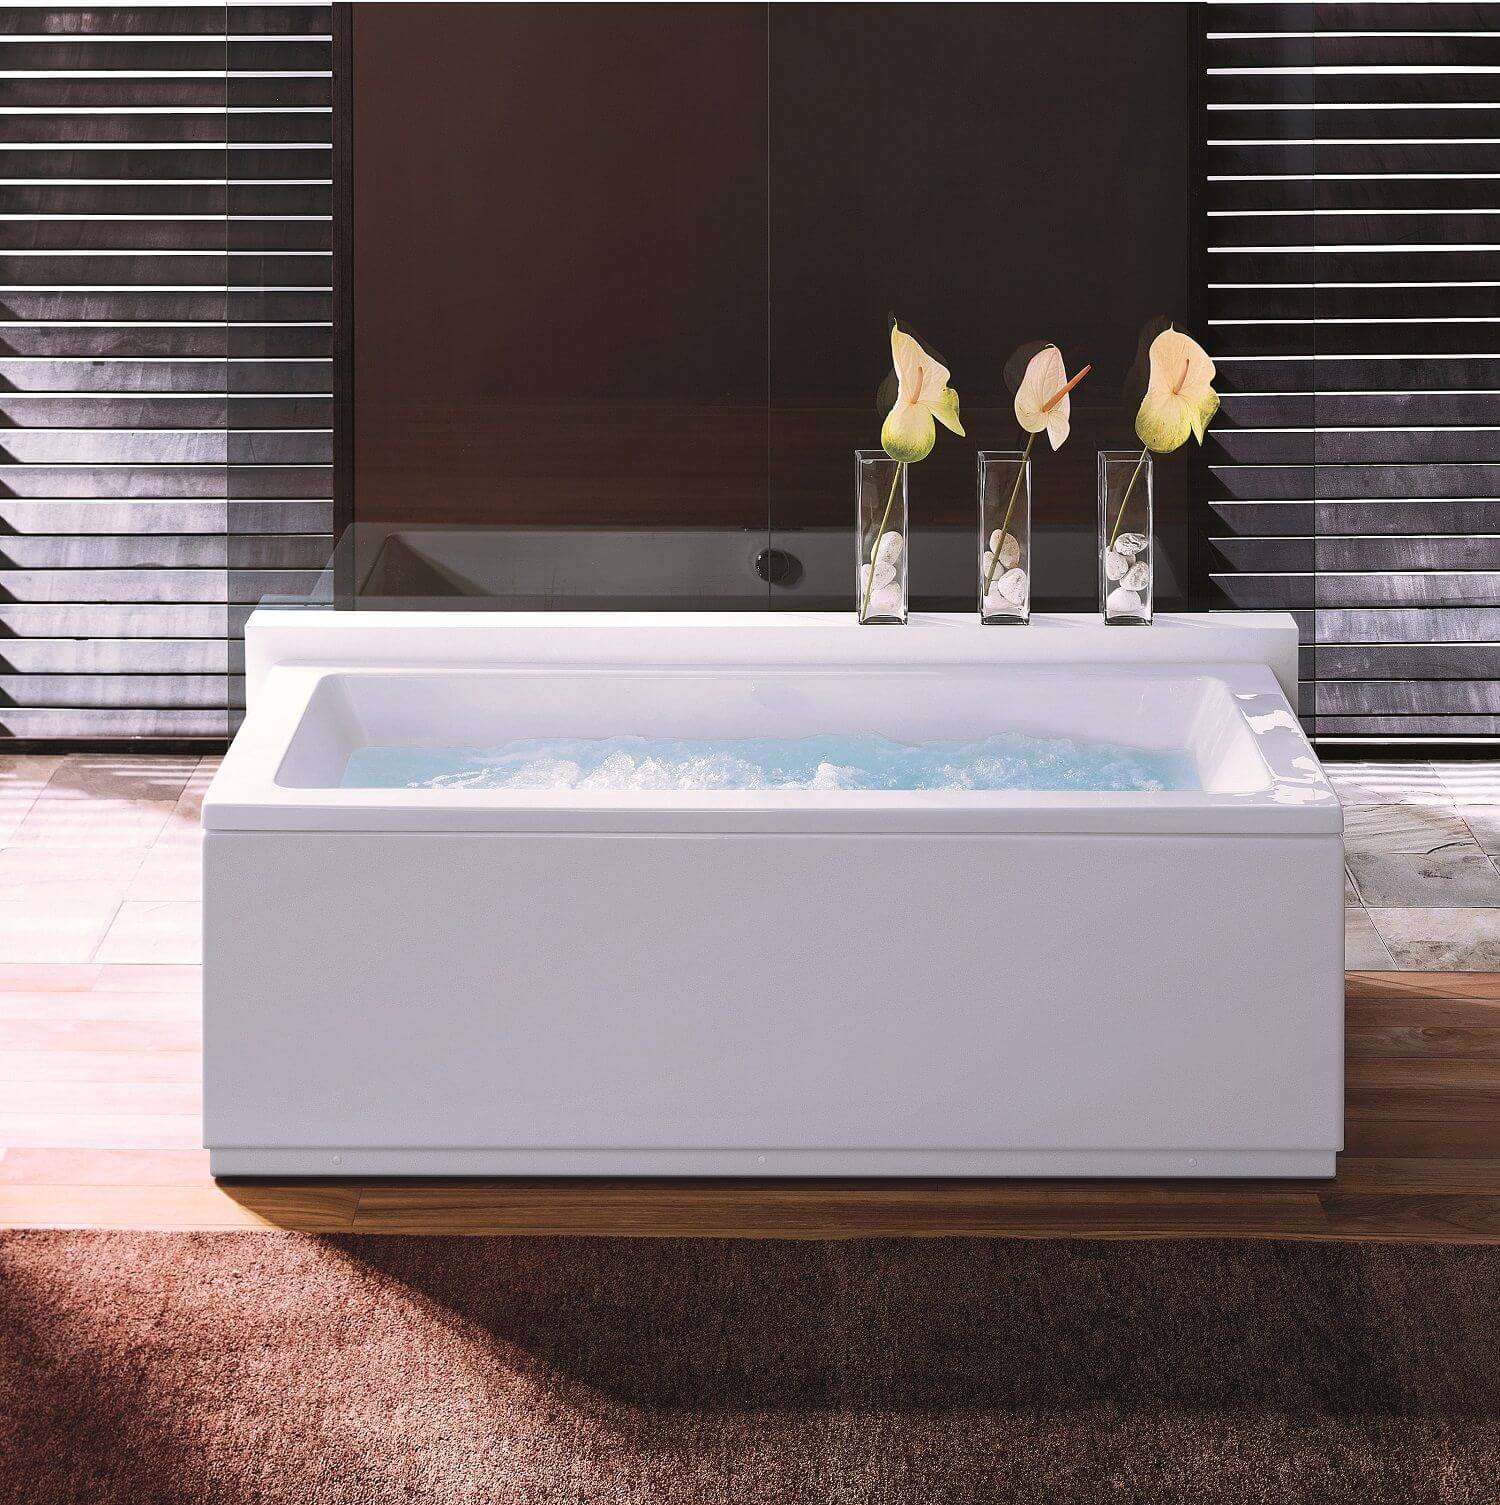 Reasons Why You Should Pamper Yourself with a Whirlpool Bath